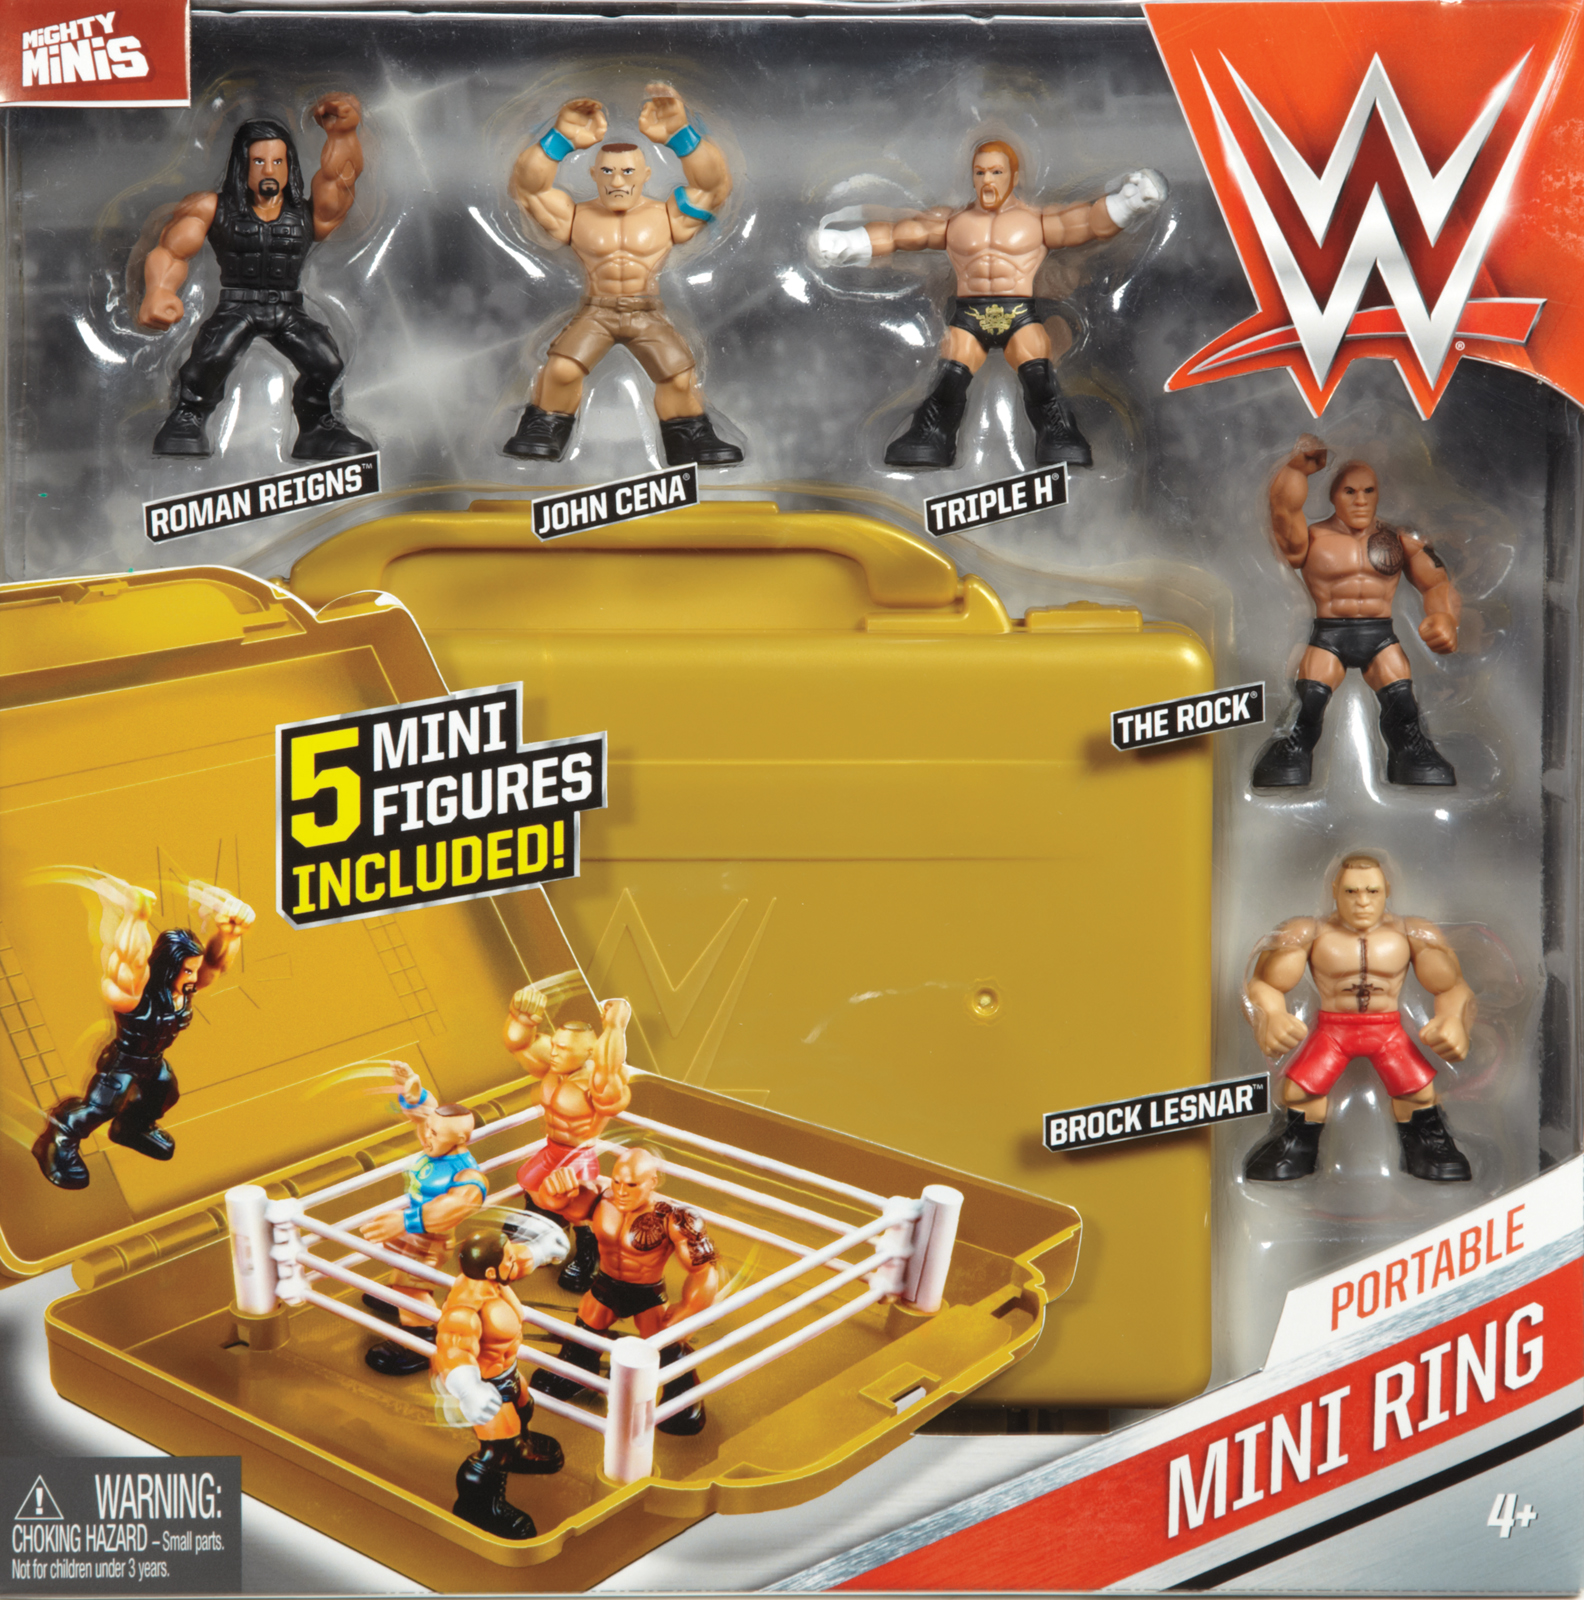 WWE Mighty Minis Ring Playset w  5 Mini Figures WWE Toy Wrestling Action Figure Playset by Mattel